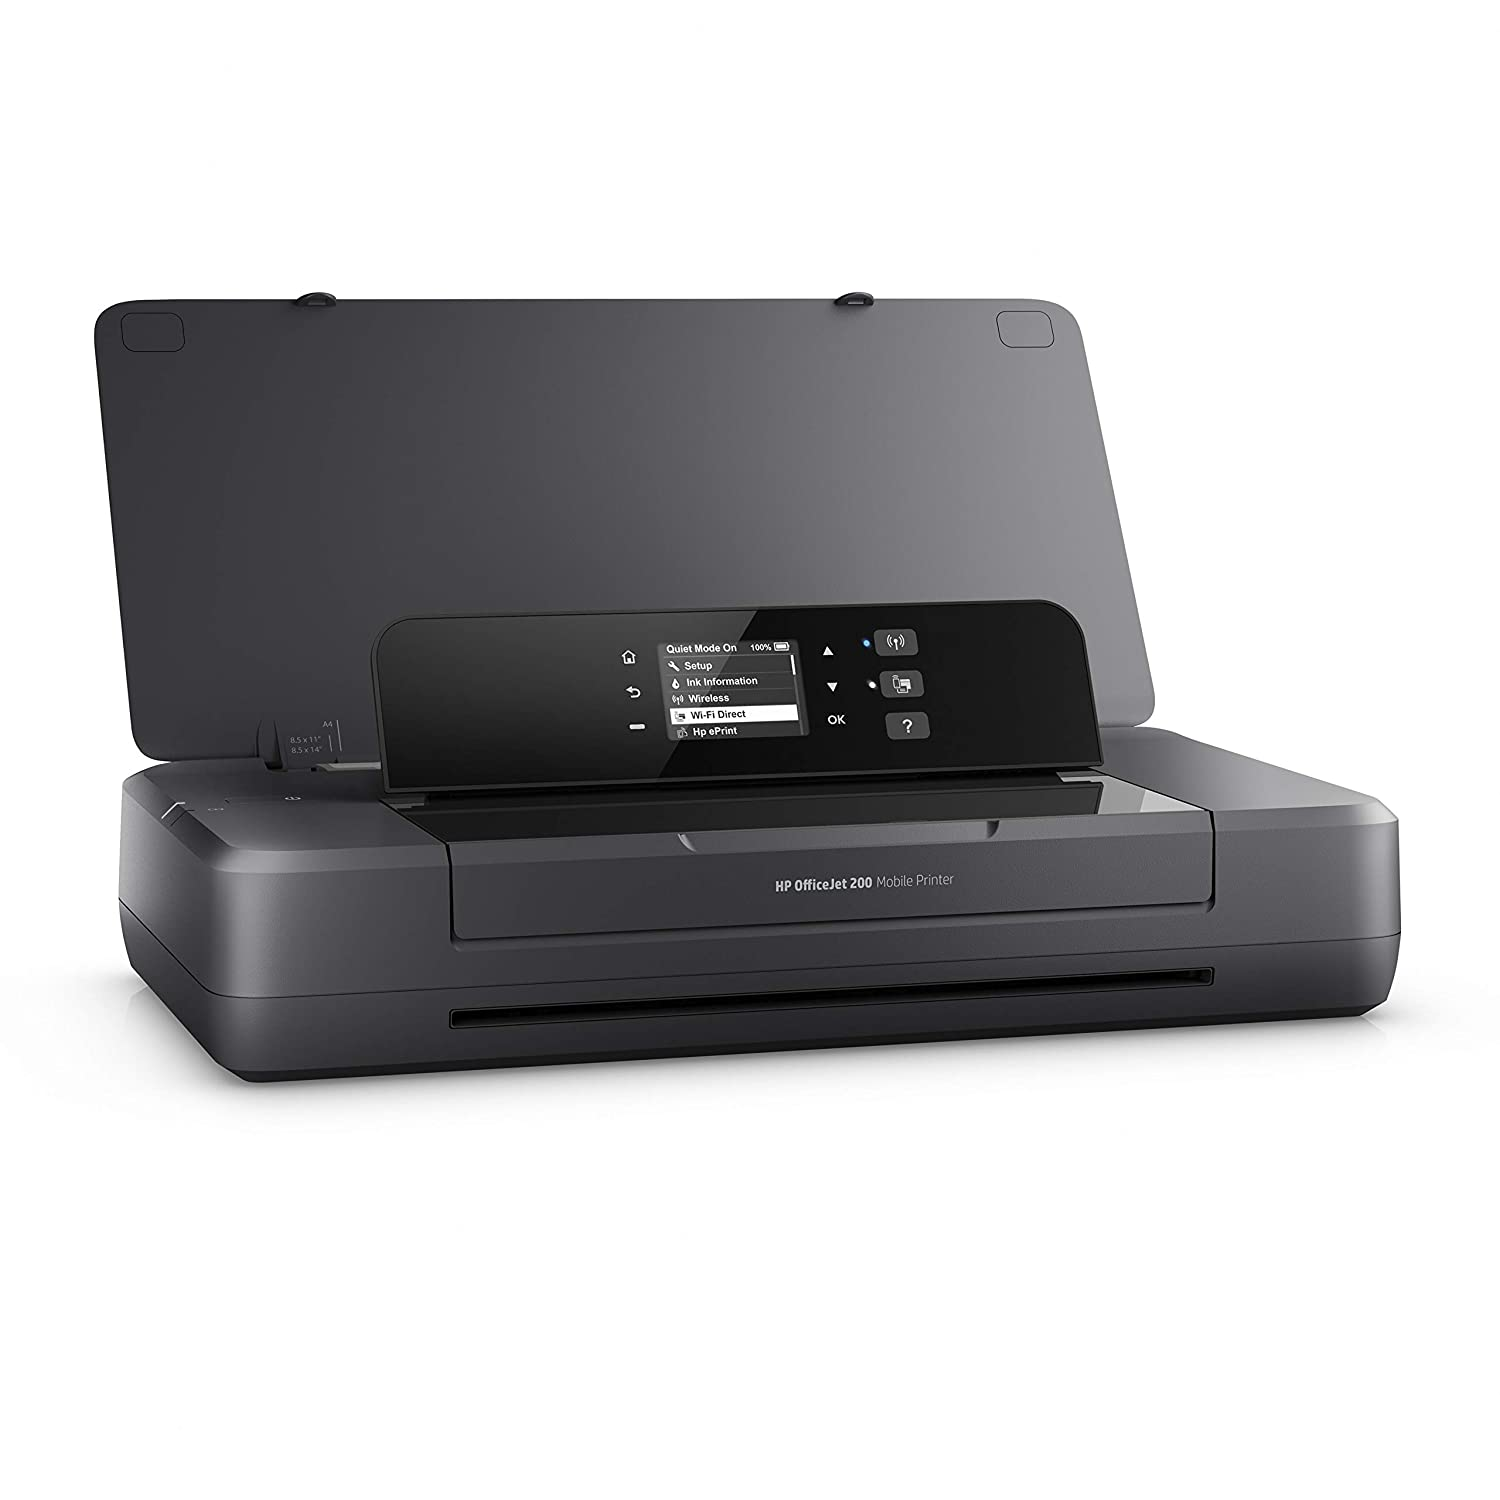 Amazon.in: Buy HP OfficeJet 200 Wireless Mobile Printer (Black) (Portable,  Rechargeable Battery) with Voice Activated Printing (Compatible with Alexa  and Google Home) Online at Low Prices in India | HP Reviews &